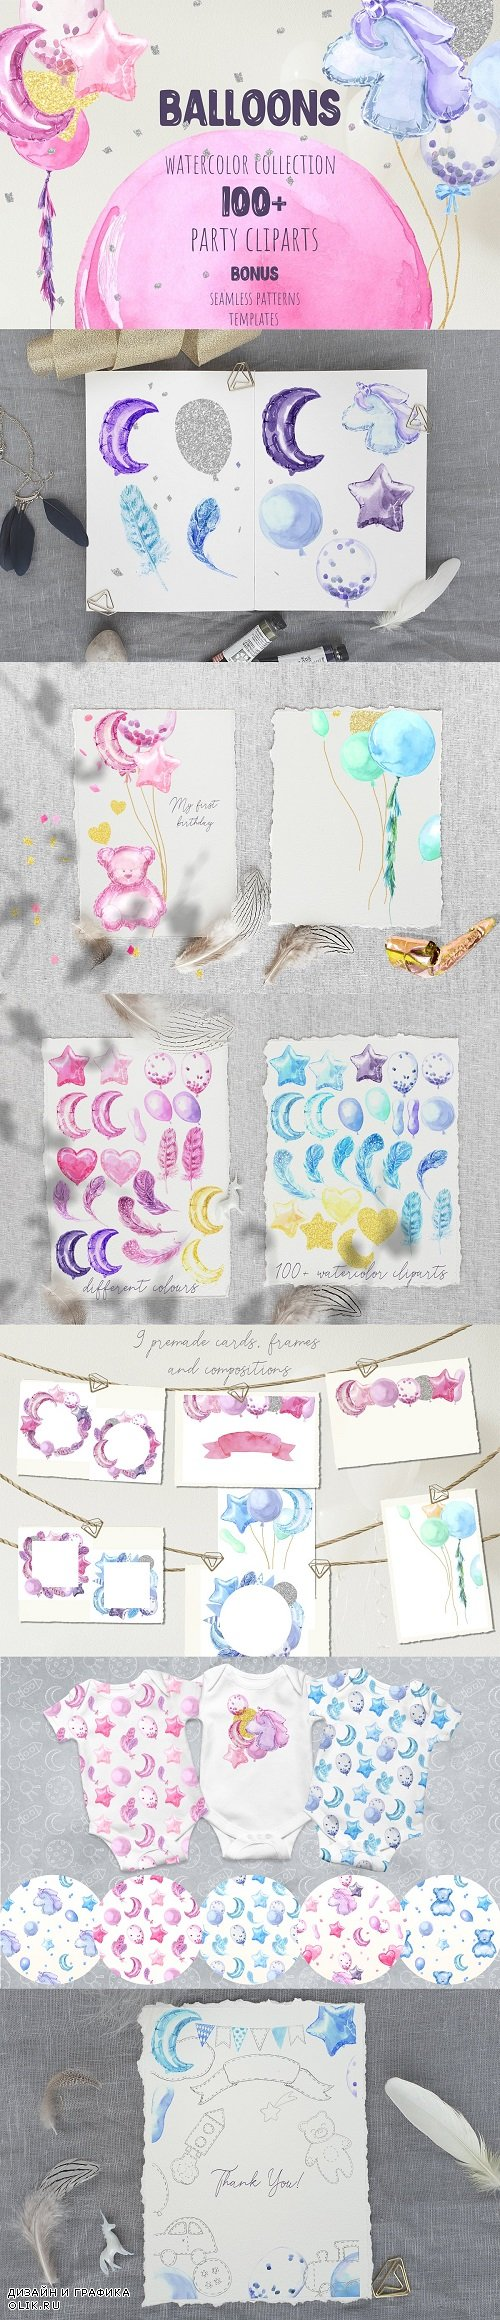 Party Balloons Watercolor Collection - 3732962